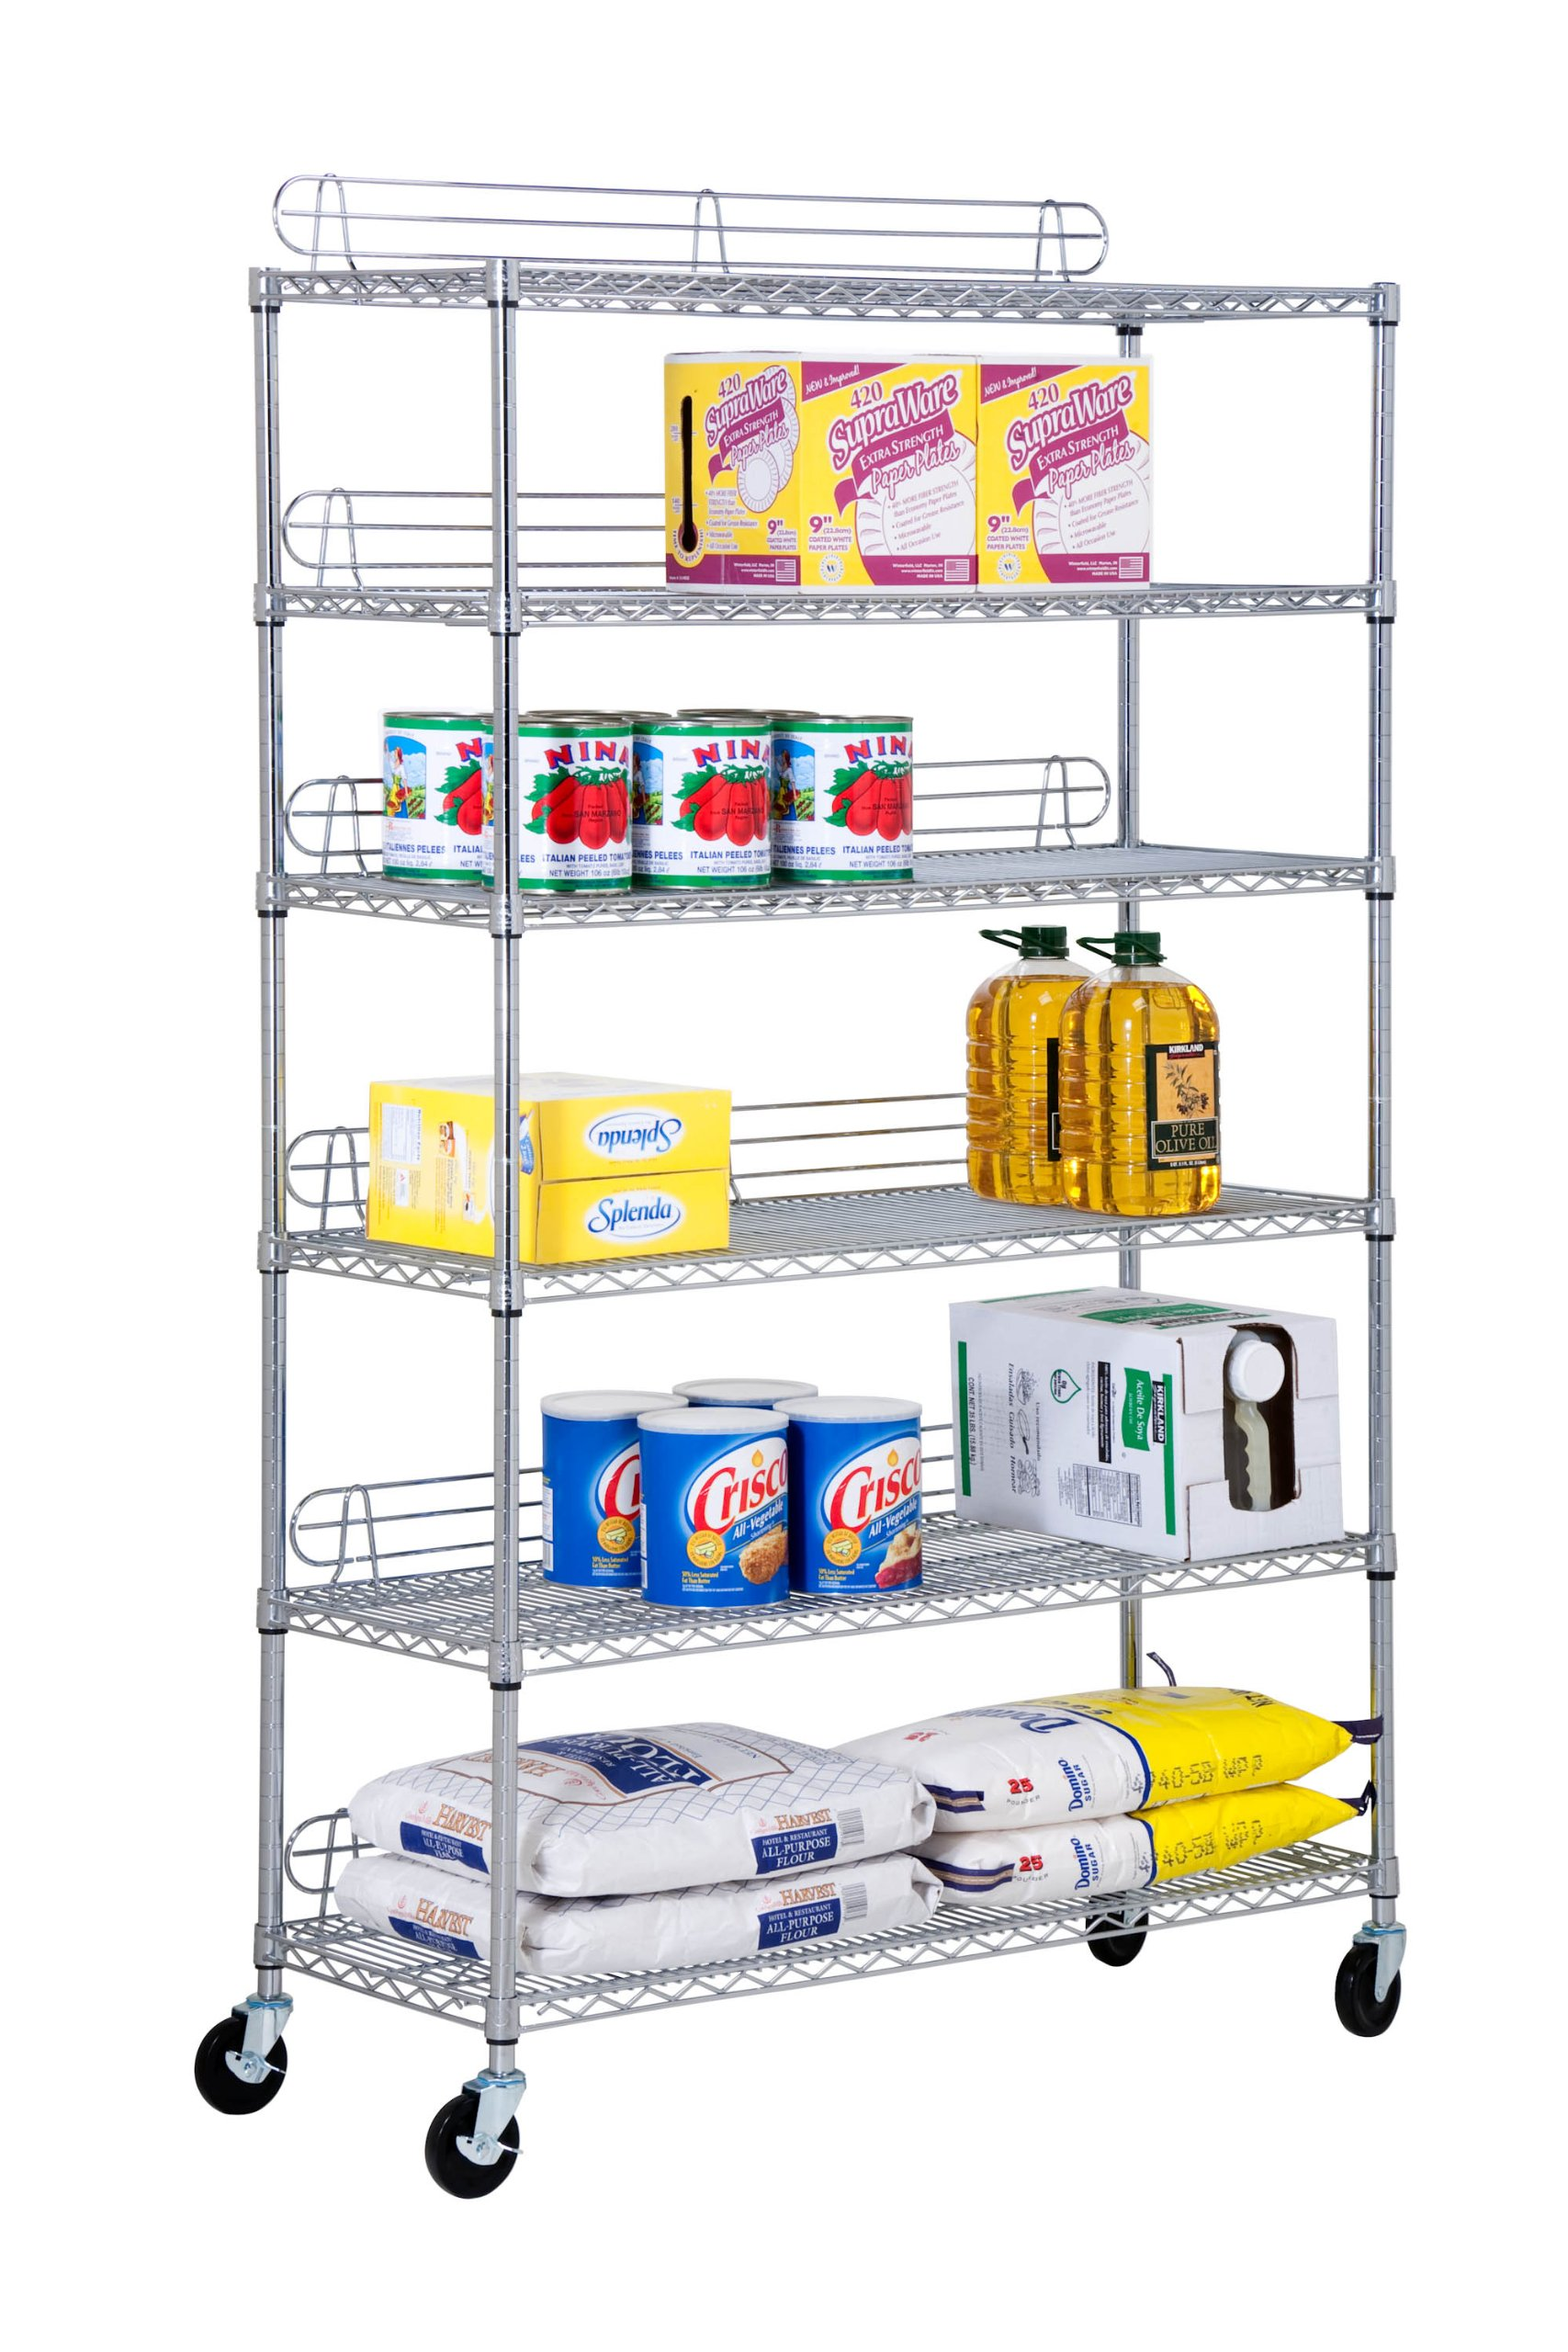 Honey-Can-Do SHF-01450 Commercial Grade Adjustable Shelving Unit, NSF Certified, 600-Pounds Per Shelf, Chrome, 6-Tier, 48Lx18Wx72H